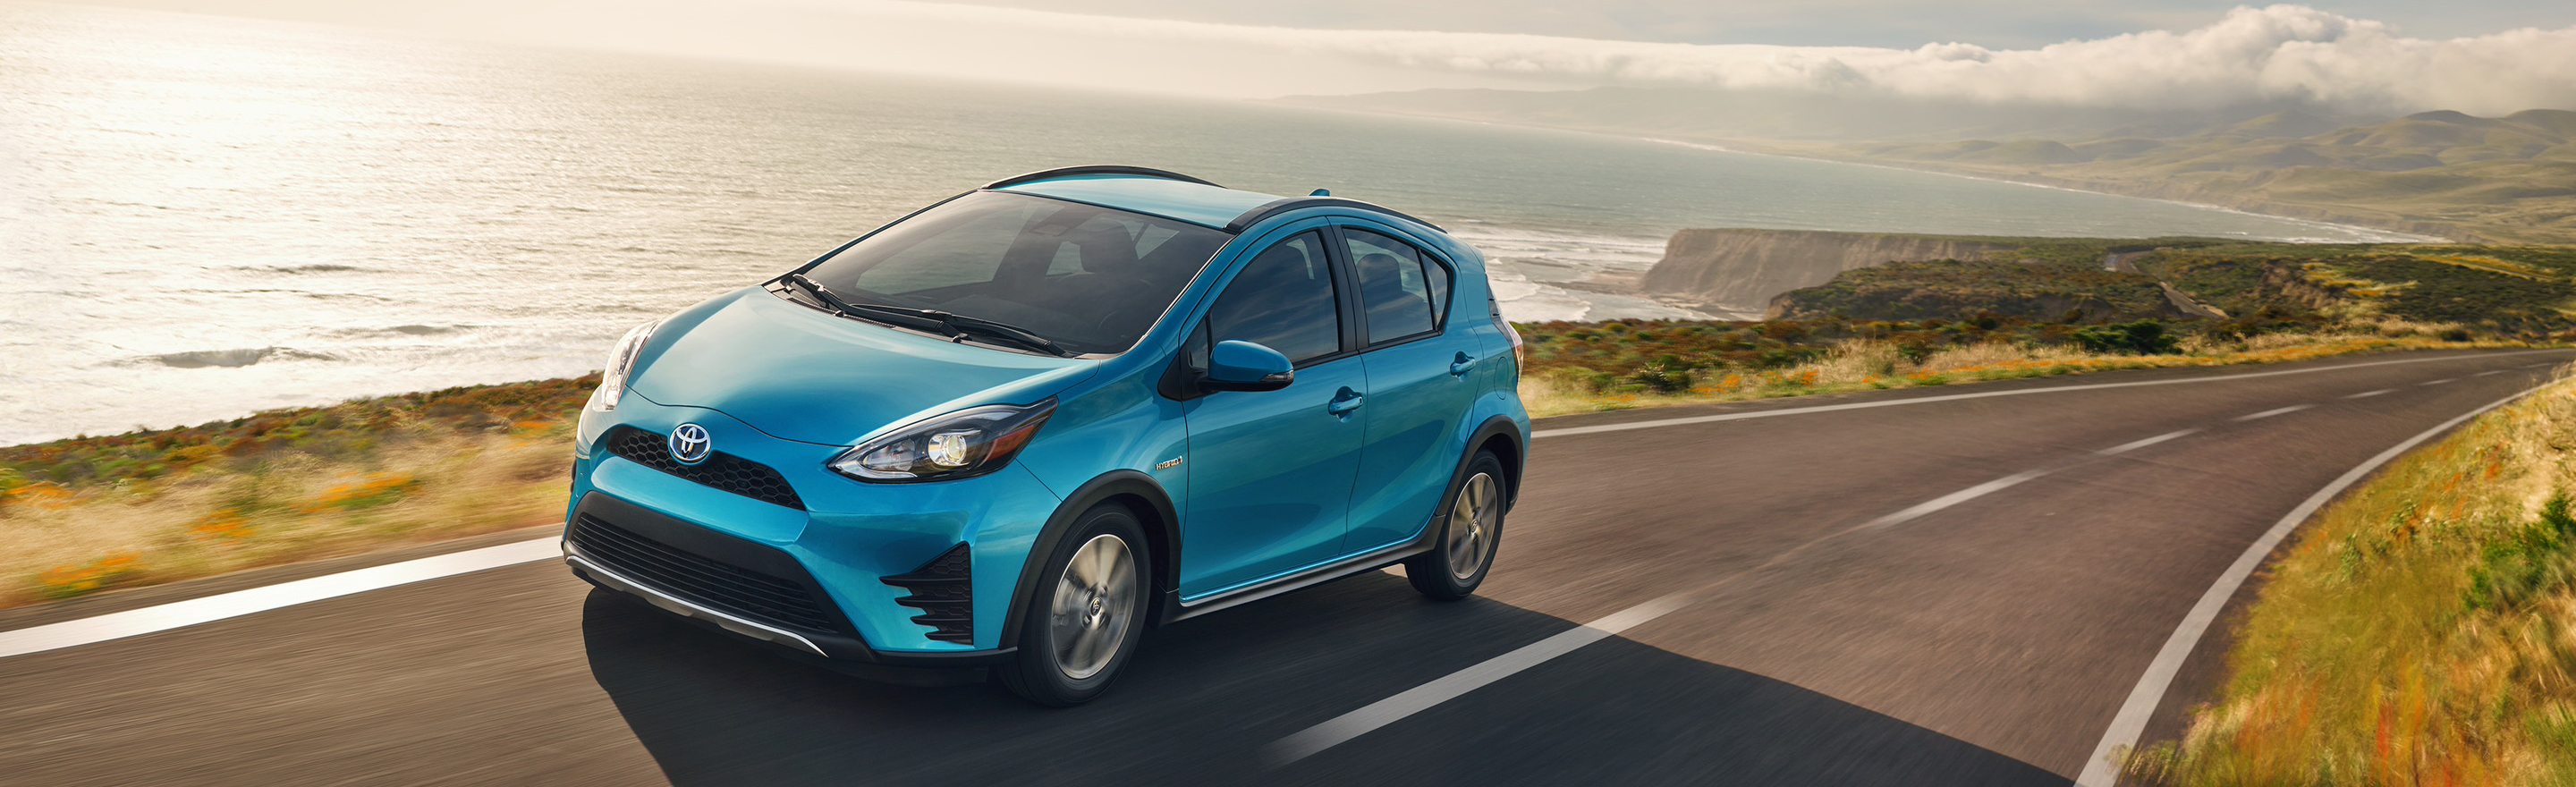 2Take The Next Step In The 2019 Toyota Prius C At Ganley Toyota